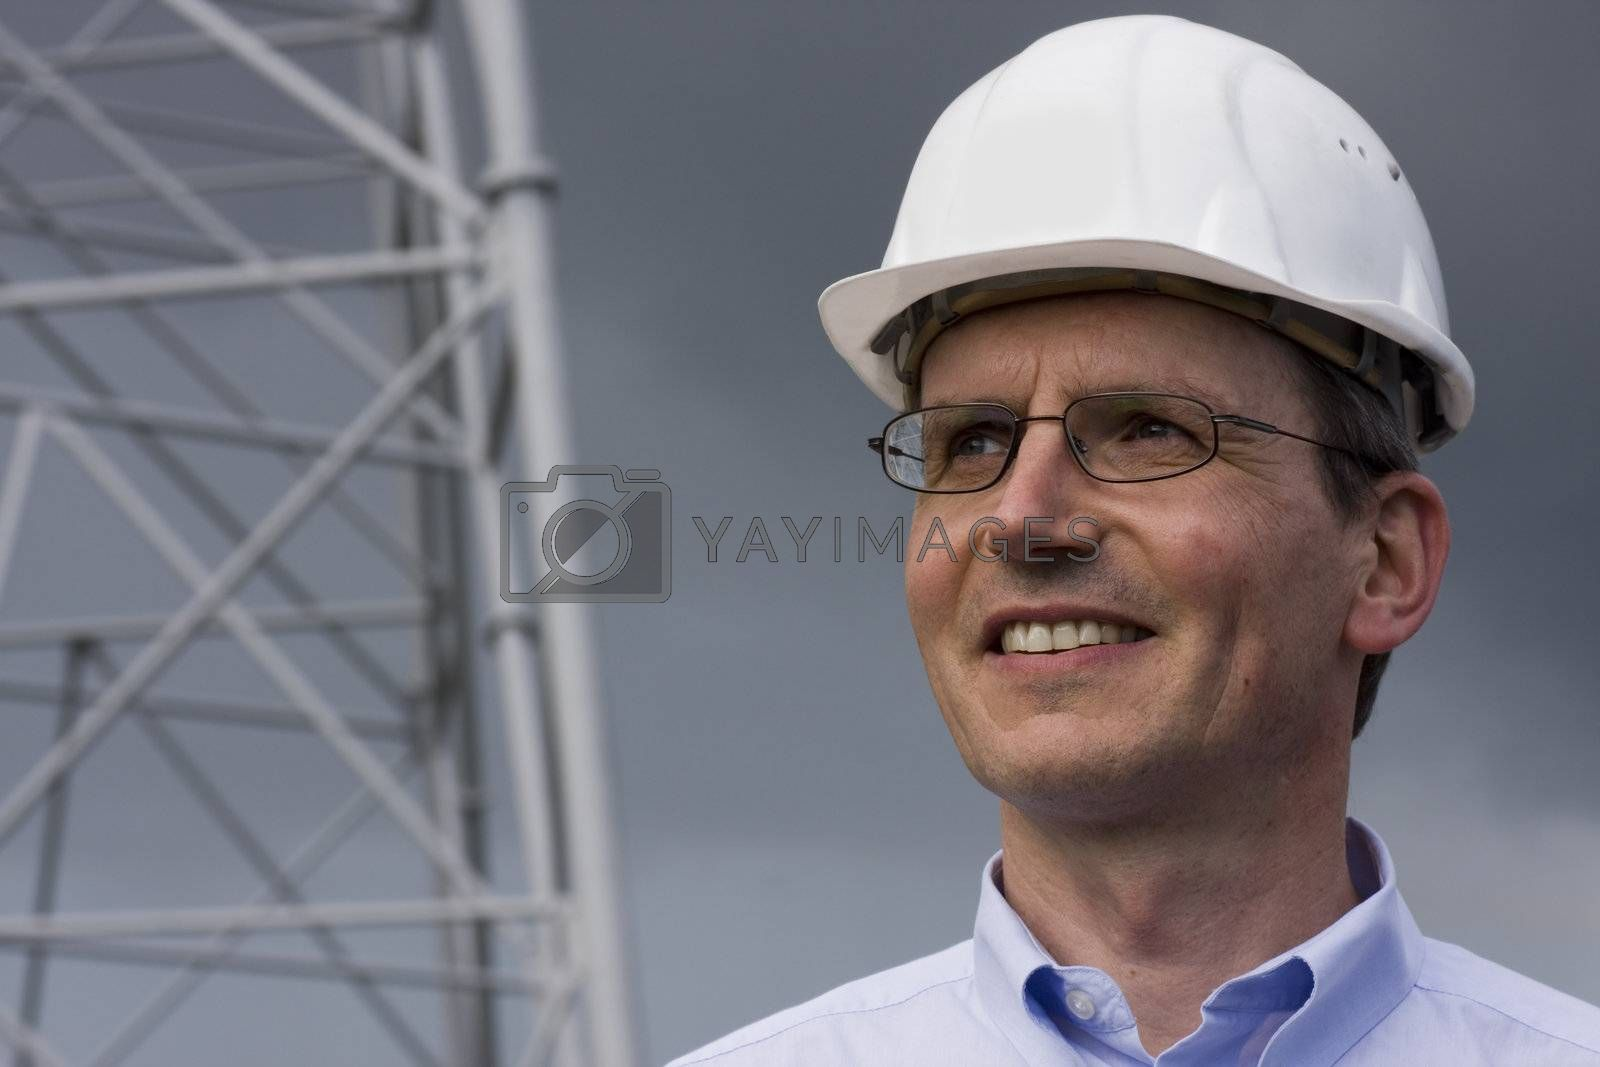 Smiling engineer with helmet on construction site